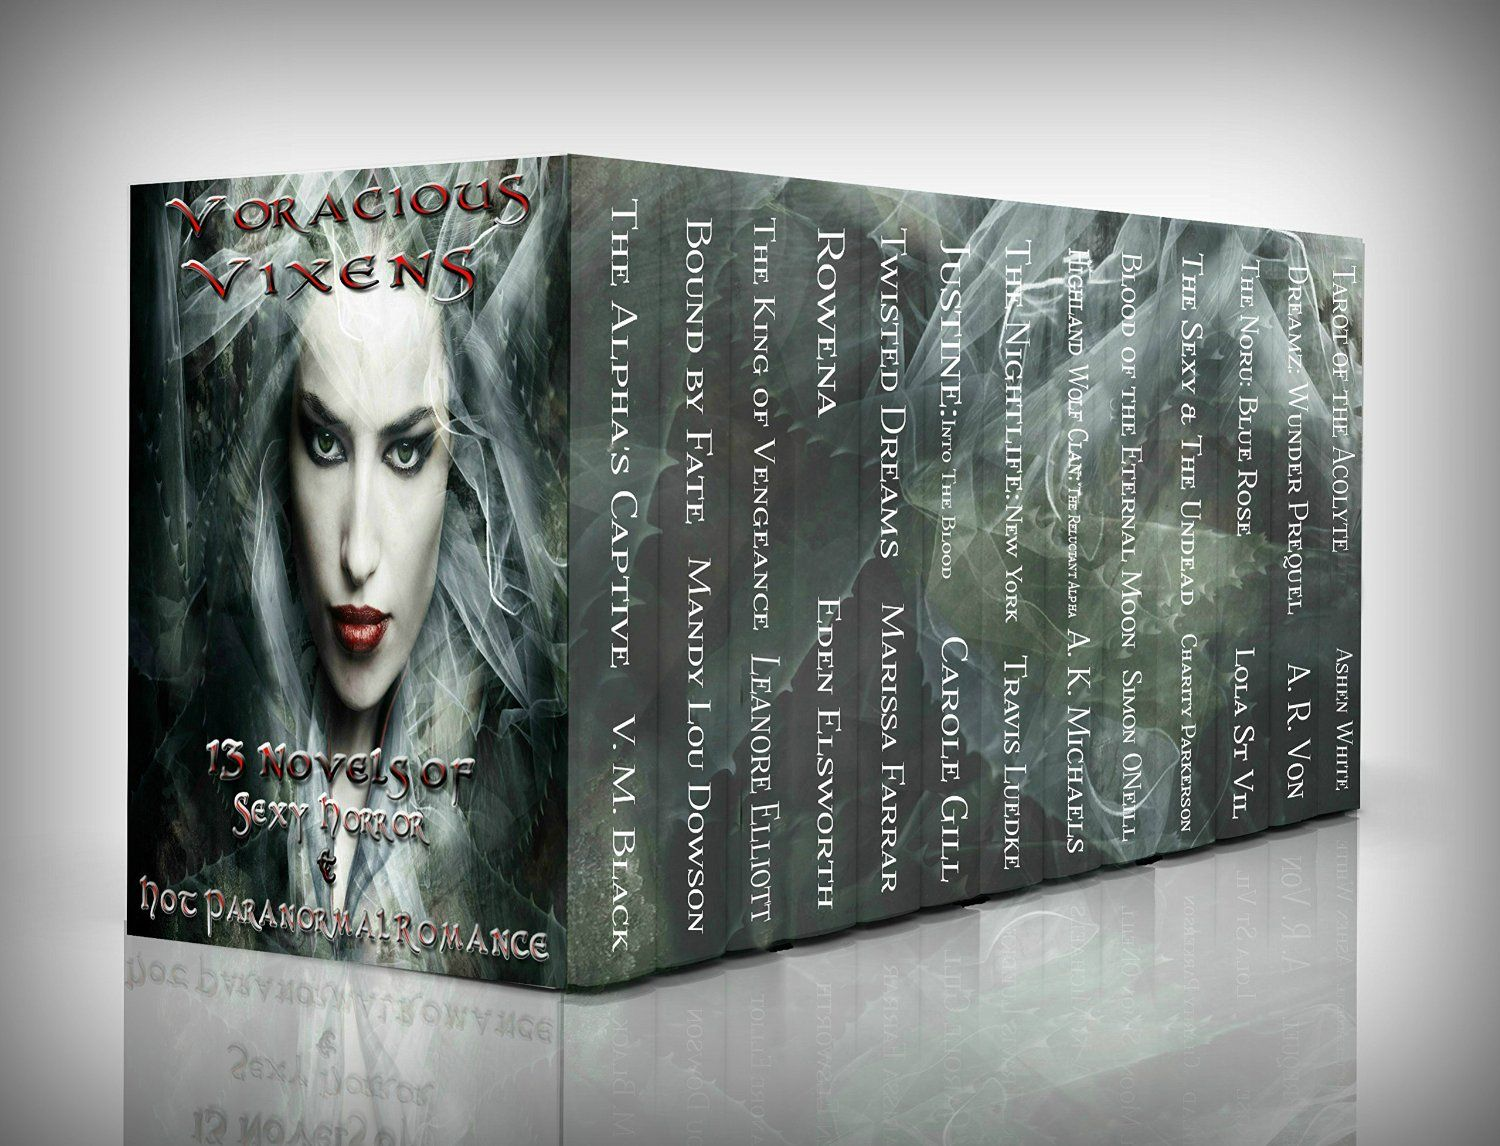 Voracious Vixens, 13 Novels of Sexy Horror and Hot Paranormal Romance (Adult Paranormal Romance Anthology)